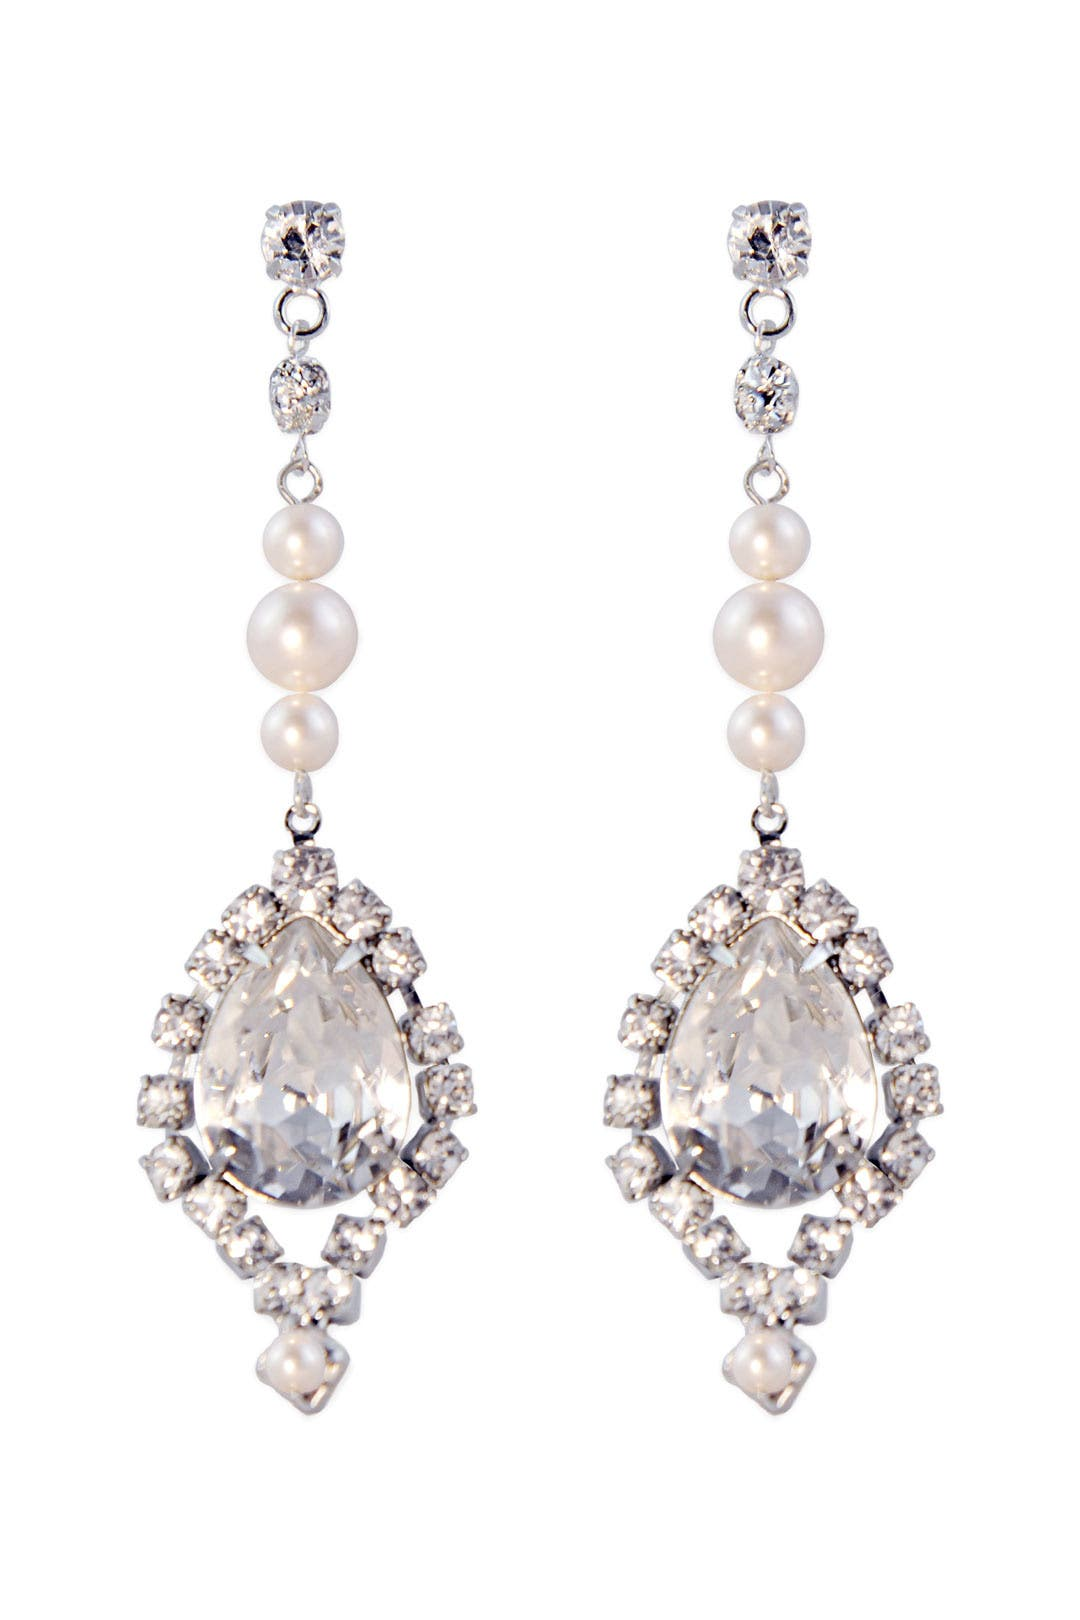 Petite Rogue Pearl Earrings by Tom Binns